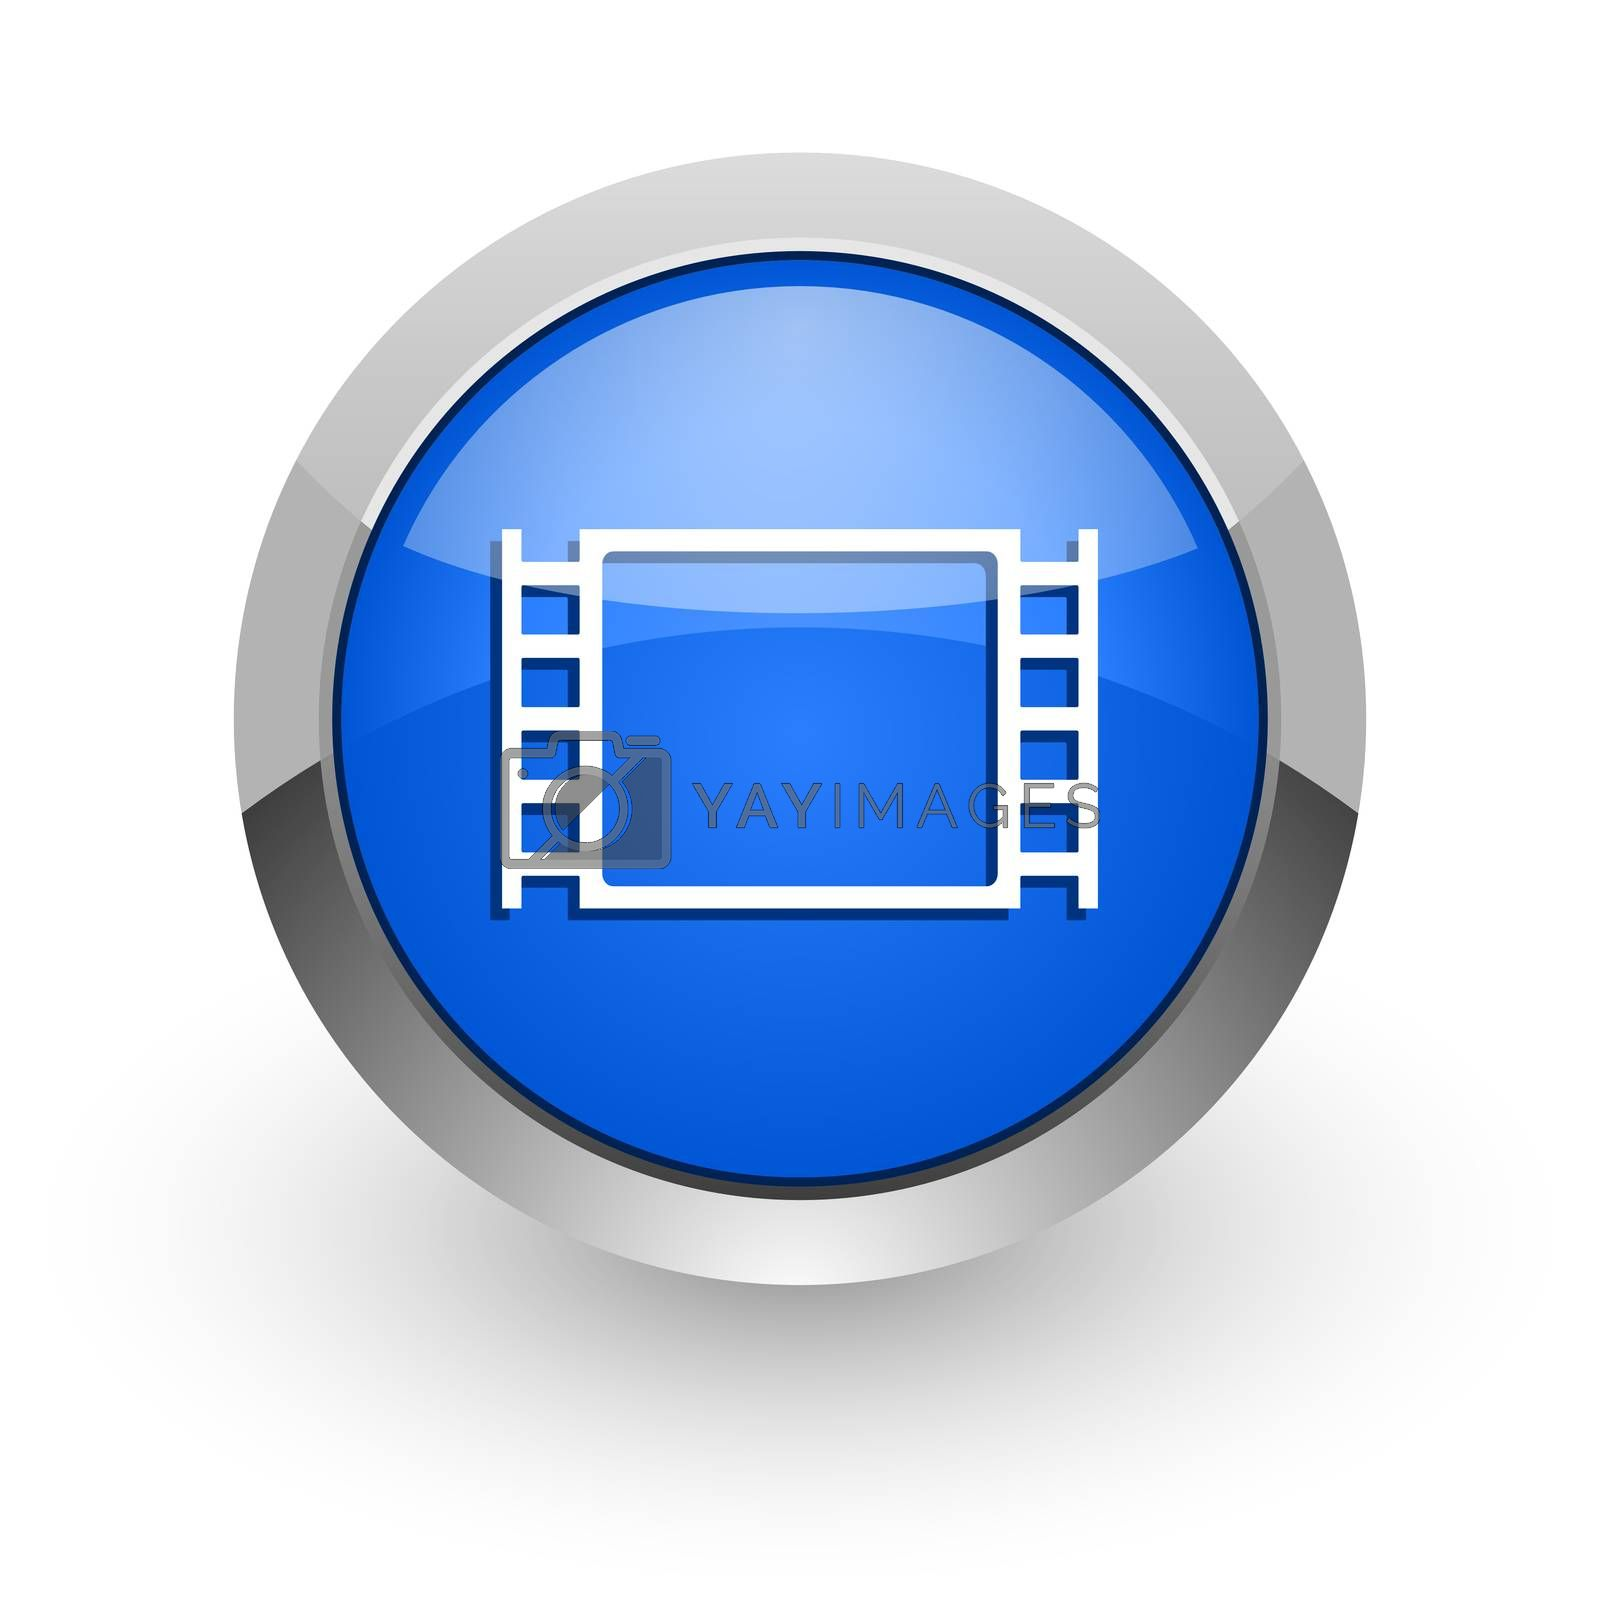 Royalty free image of movie blue glossy web icon by alexwhite